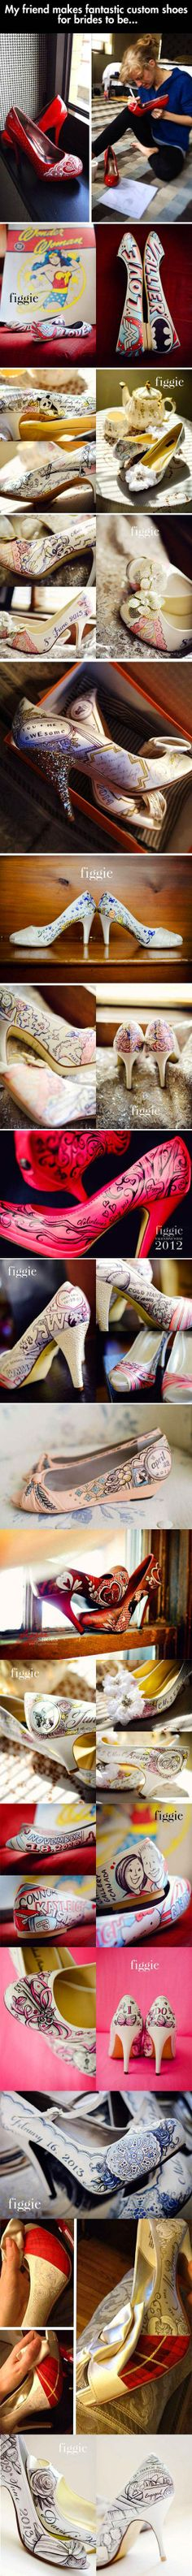 Some awesome custom shoes that are worth a second look.